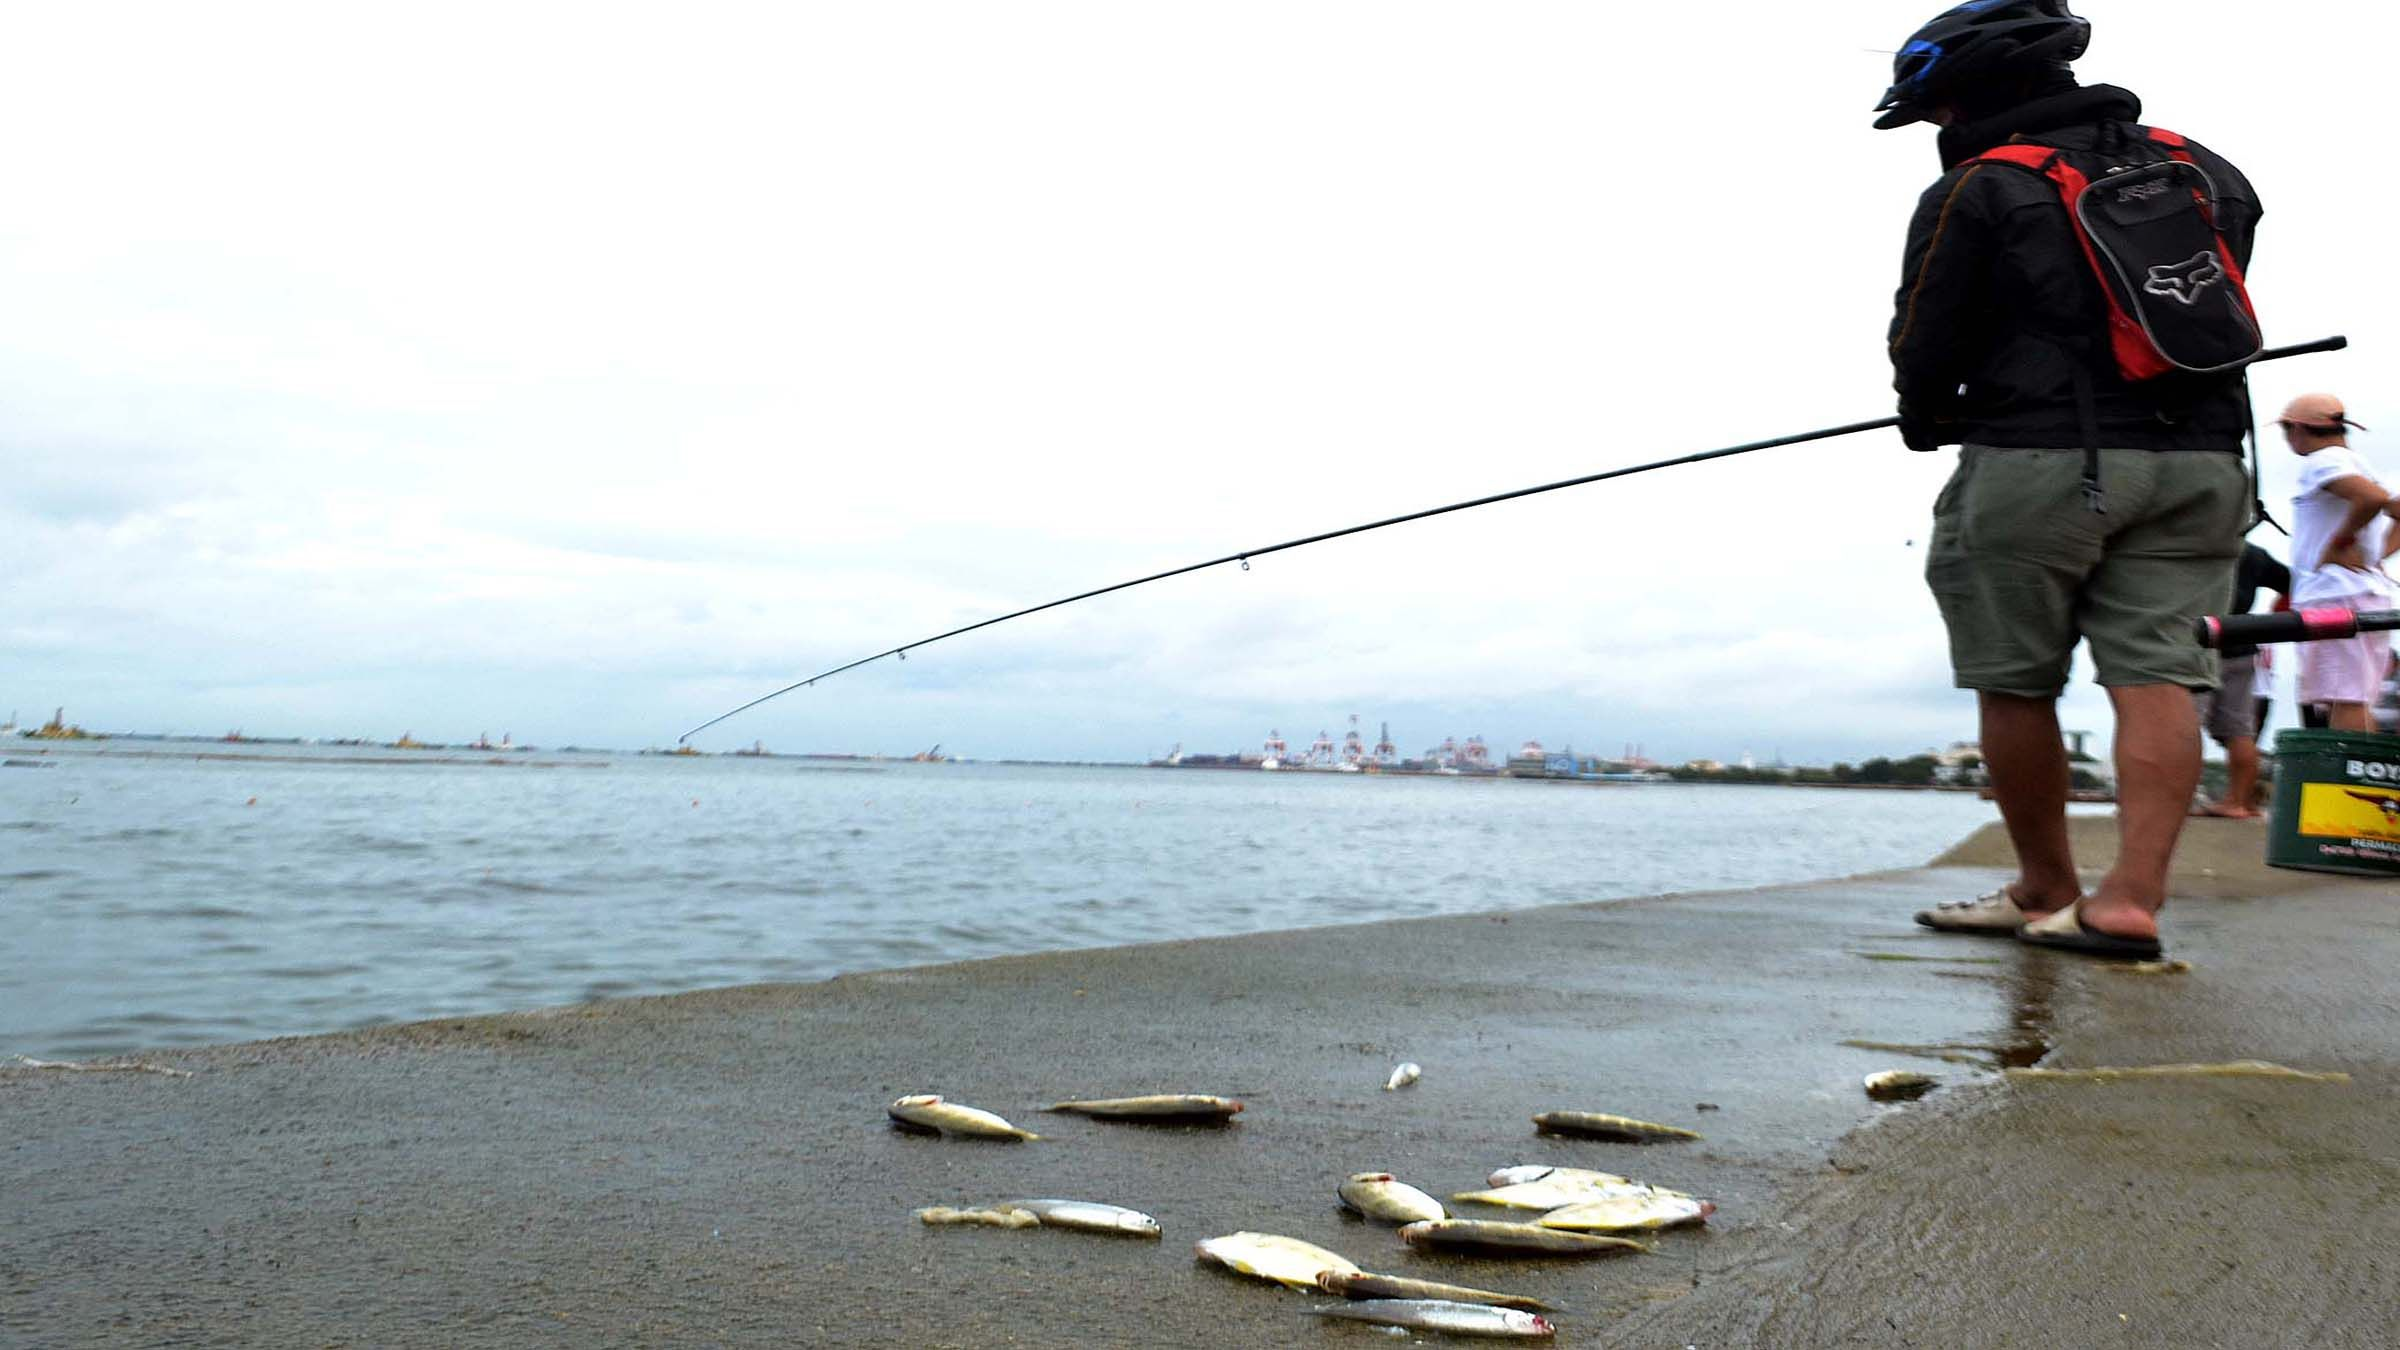 SMALL CATCH photo by Mike Taboy